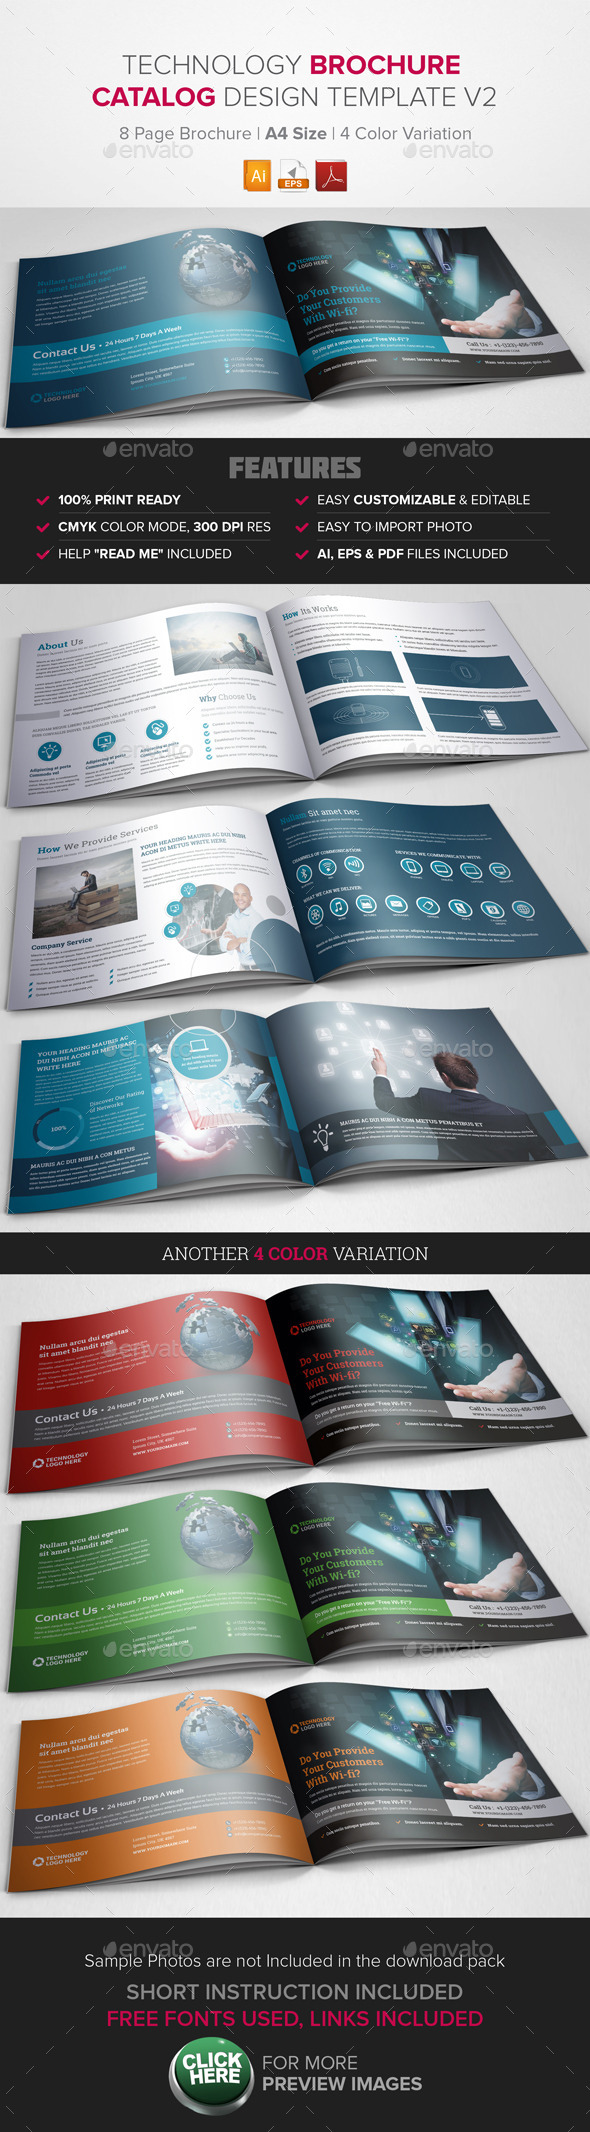 GraphicRiver Technology Brochure Catalog Template v2 9655510